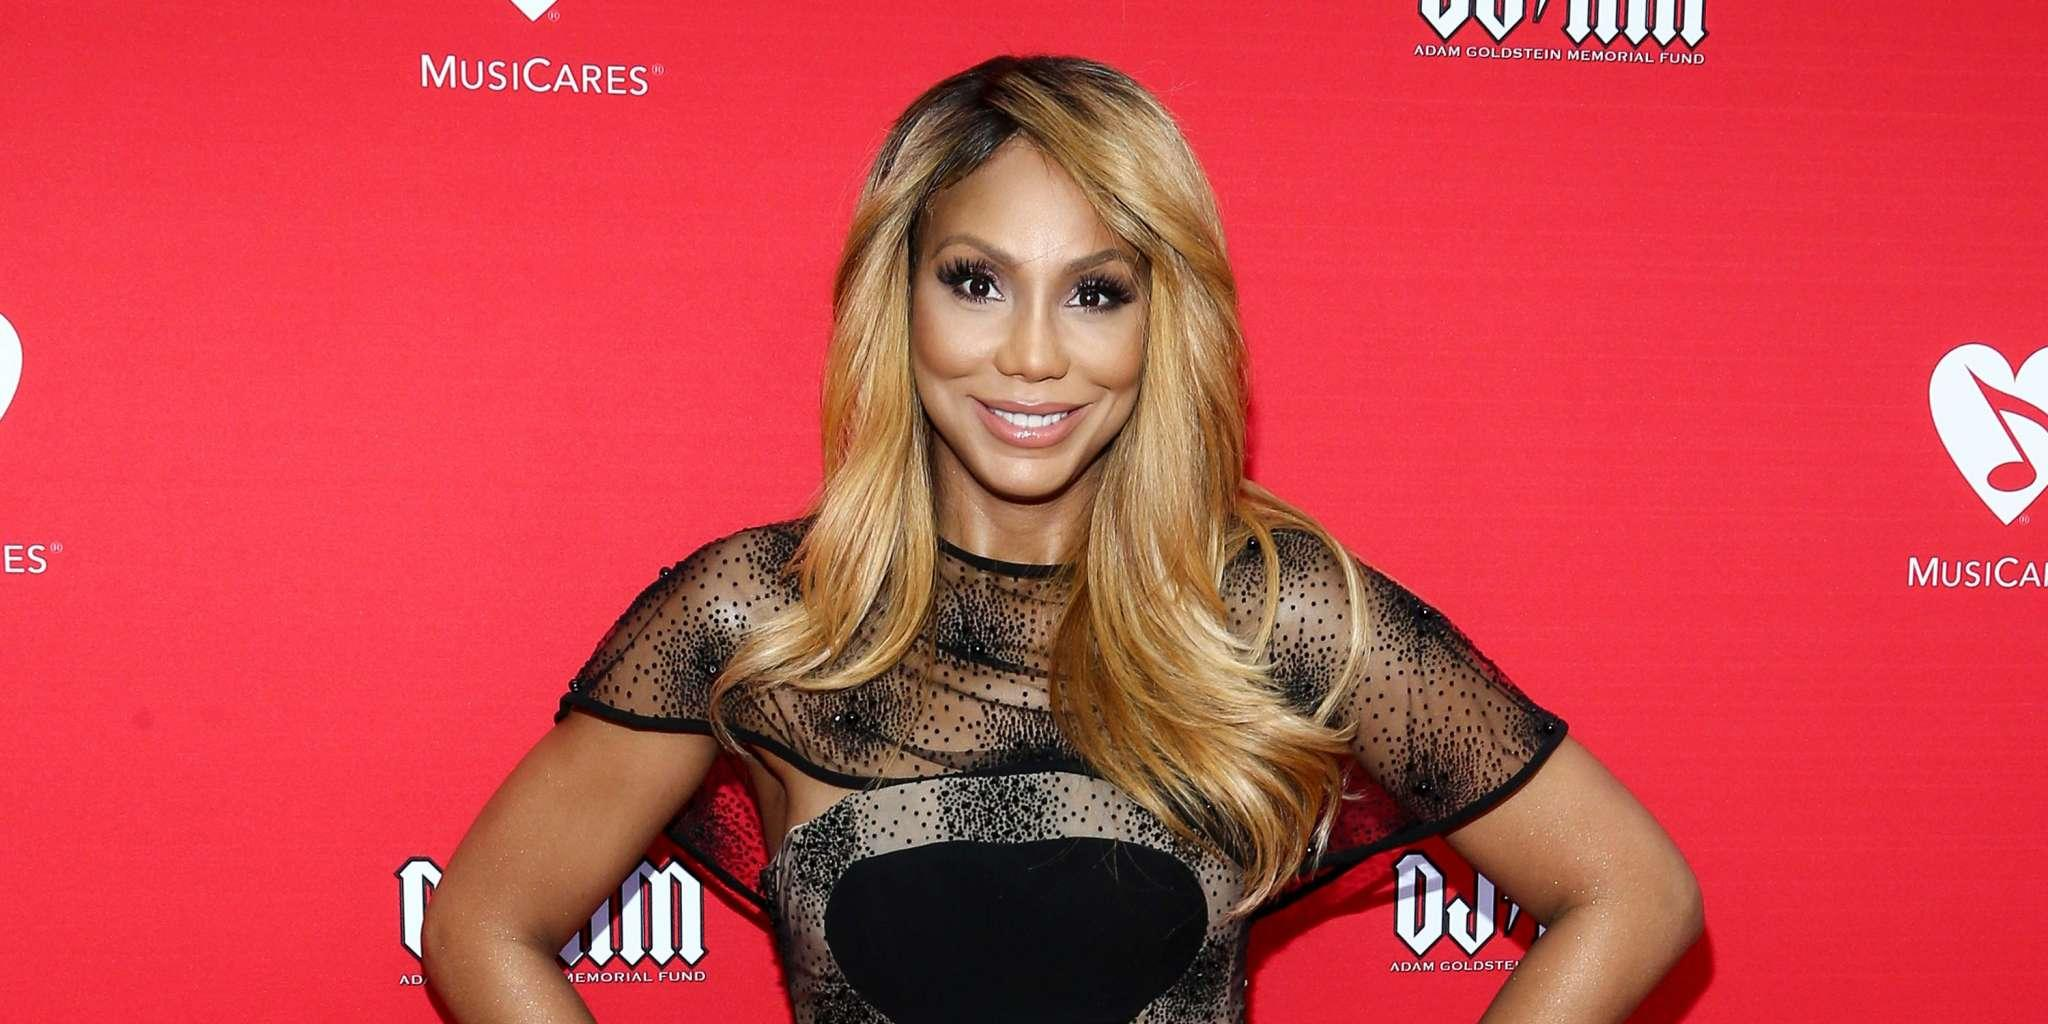 Tamar Braxton Twerks For The 'Gram And Fans Are Impressed By Her Skills